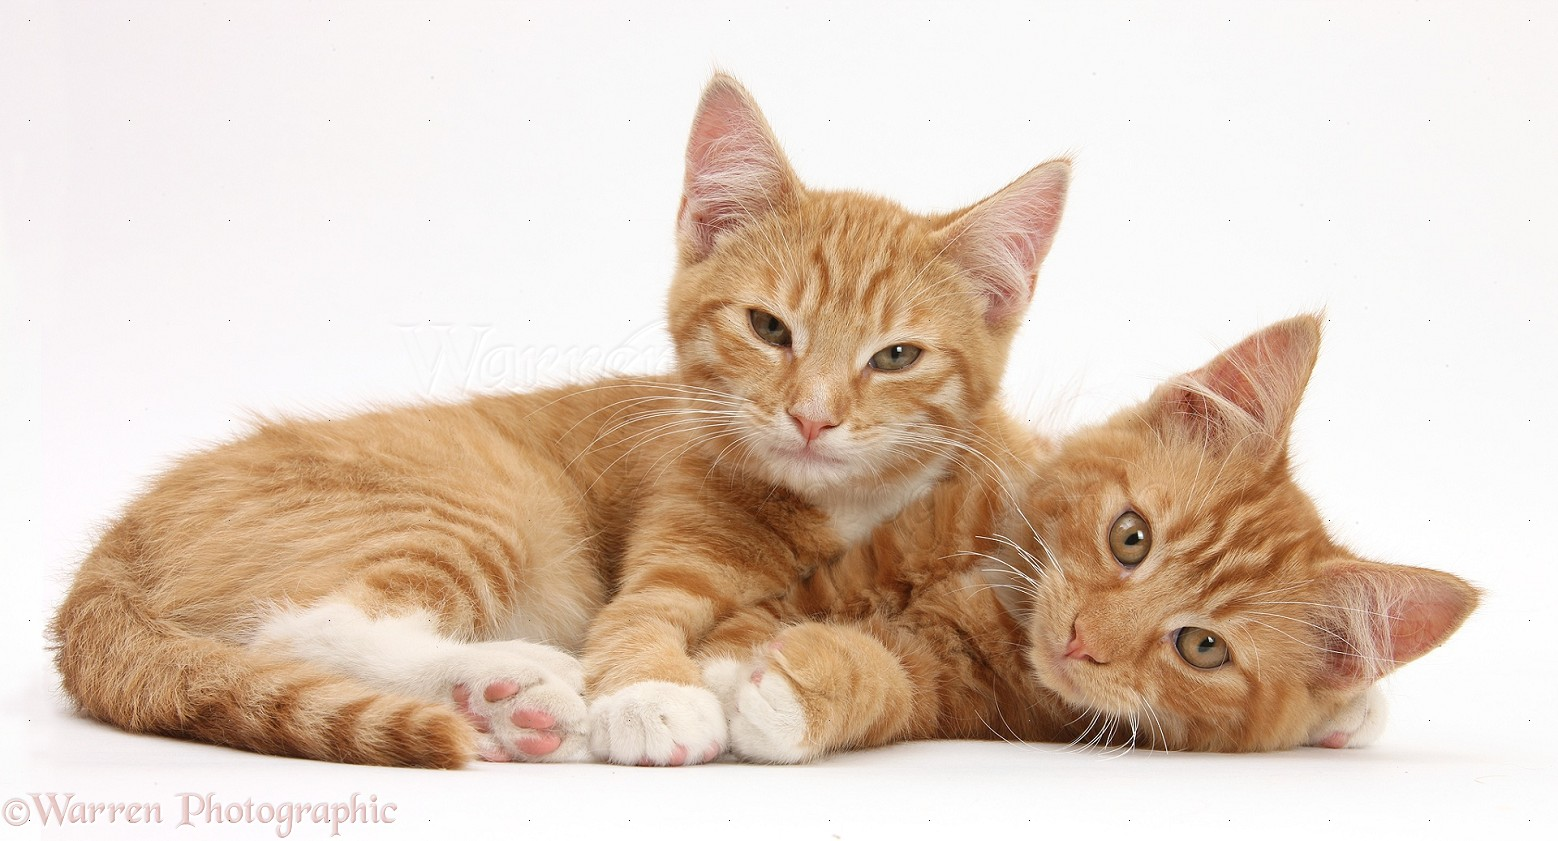 two ginger kittens lounging together photo   wp31770